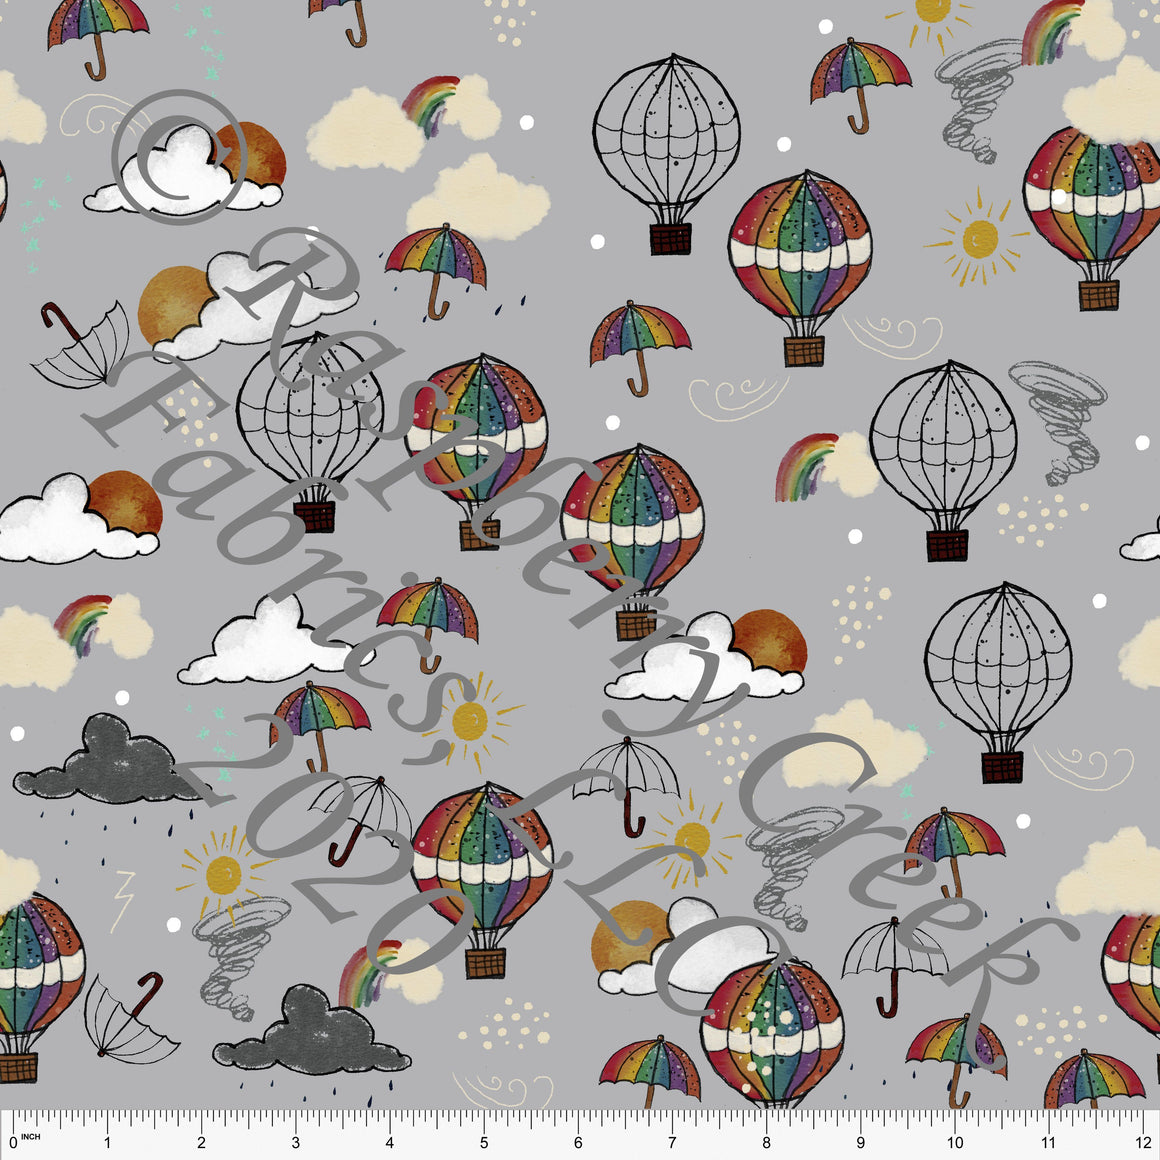 Grey Red Mustard Green Blue and Eggplant Happy Place Umbrella Hot Air Balloon Print 4 Way Stretch Double Brushed Poly Knit Fabric, By Bri Powell for CLUB Fabrics - Raspberry Creek Fabrics